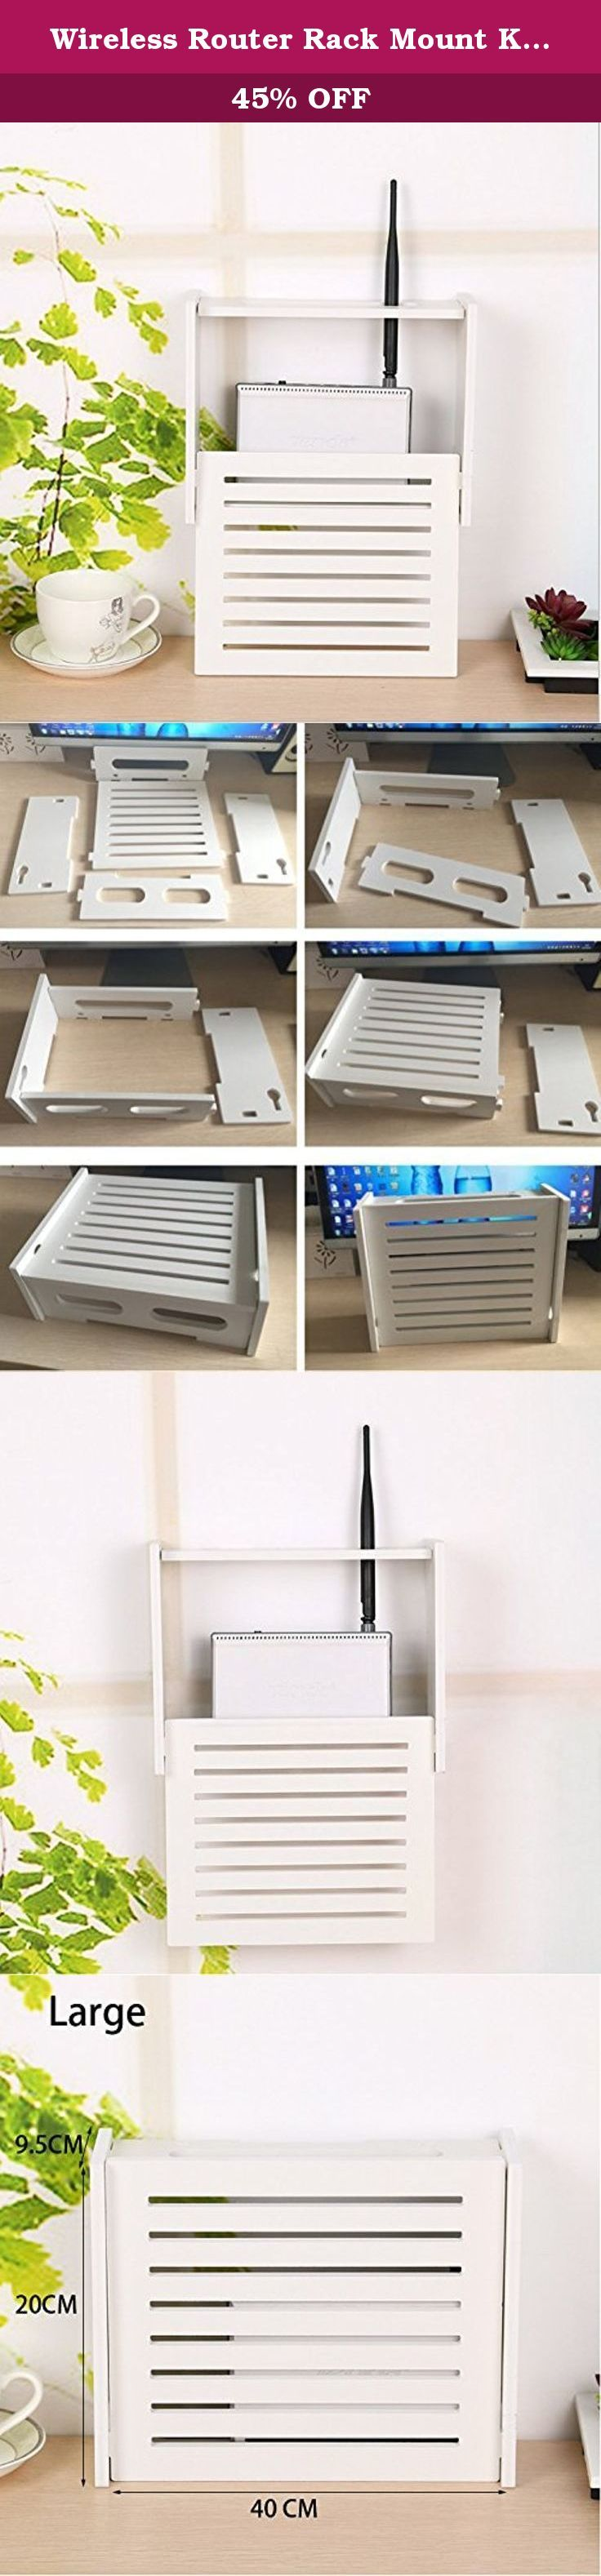 Wireless Router Rack Mount Kit Set Top Box Holder Wooden Wall Shelf Gateway Storage Box Free of Punch (Large). ♪ Router &STB Storage Box on desk, storeroom, kitchen, bedroom, laundry room, garden, fashion and brief. ♪ Size: 15.75(L)*3.74(W)*7.87(H) inch or 40*9.5*20CM.